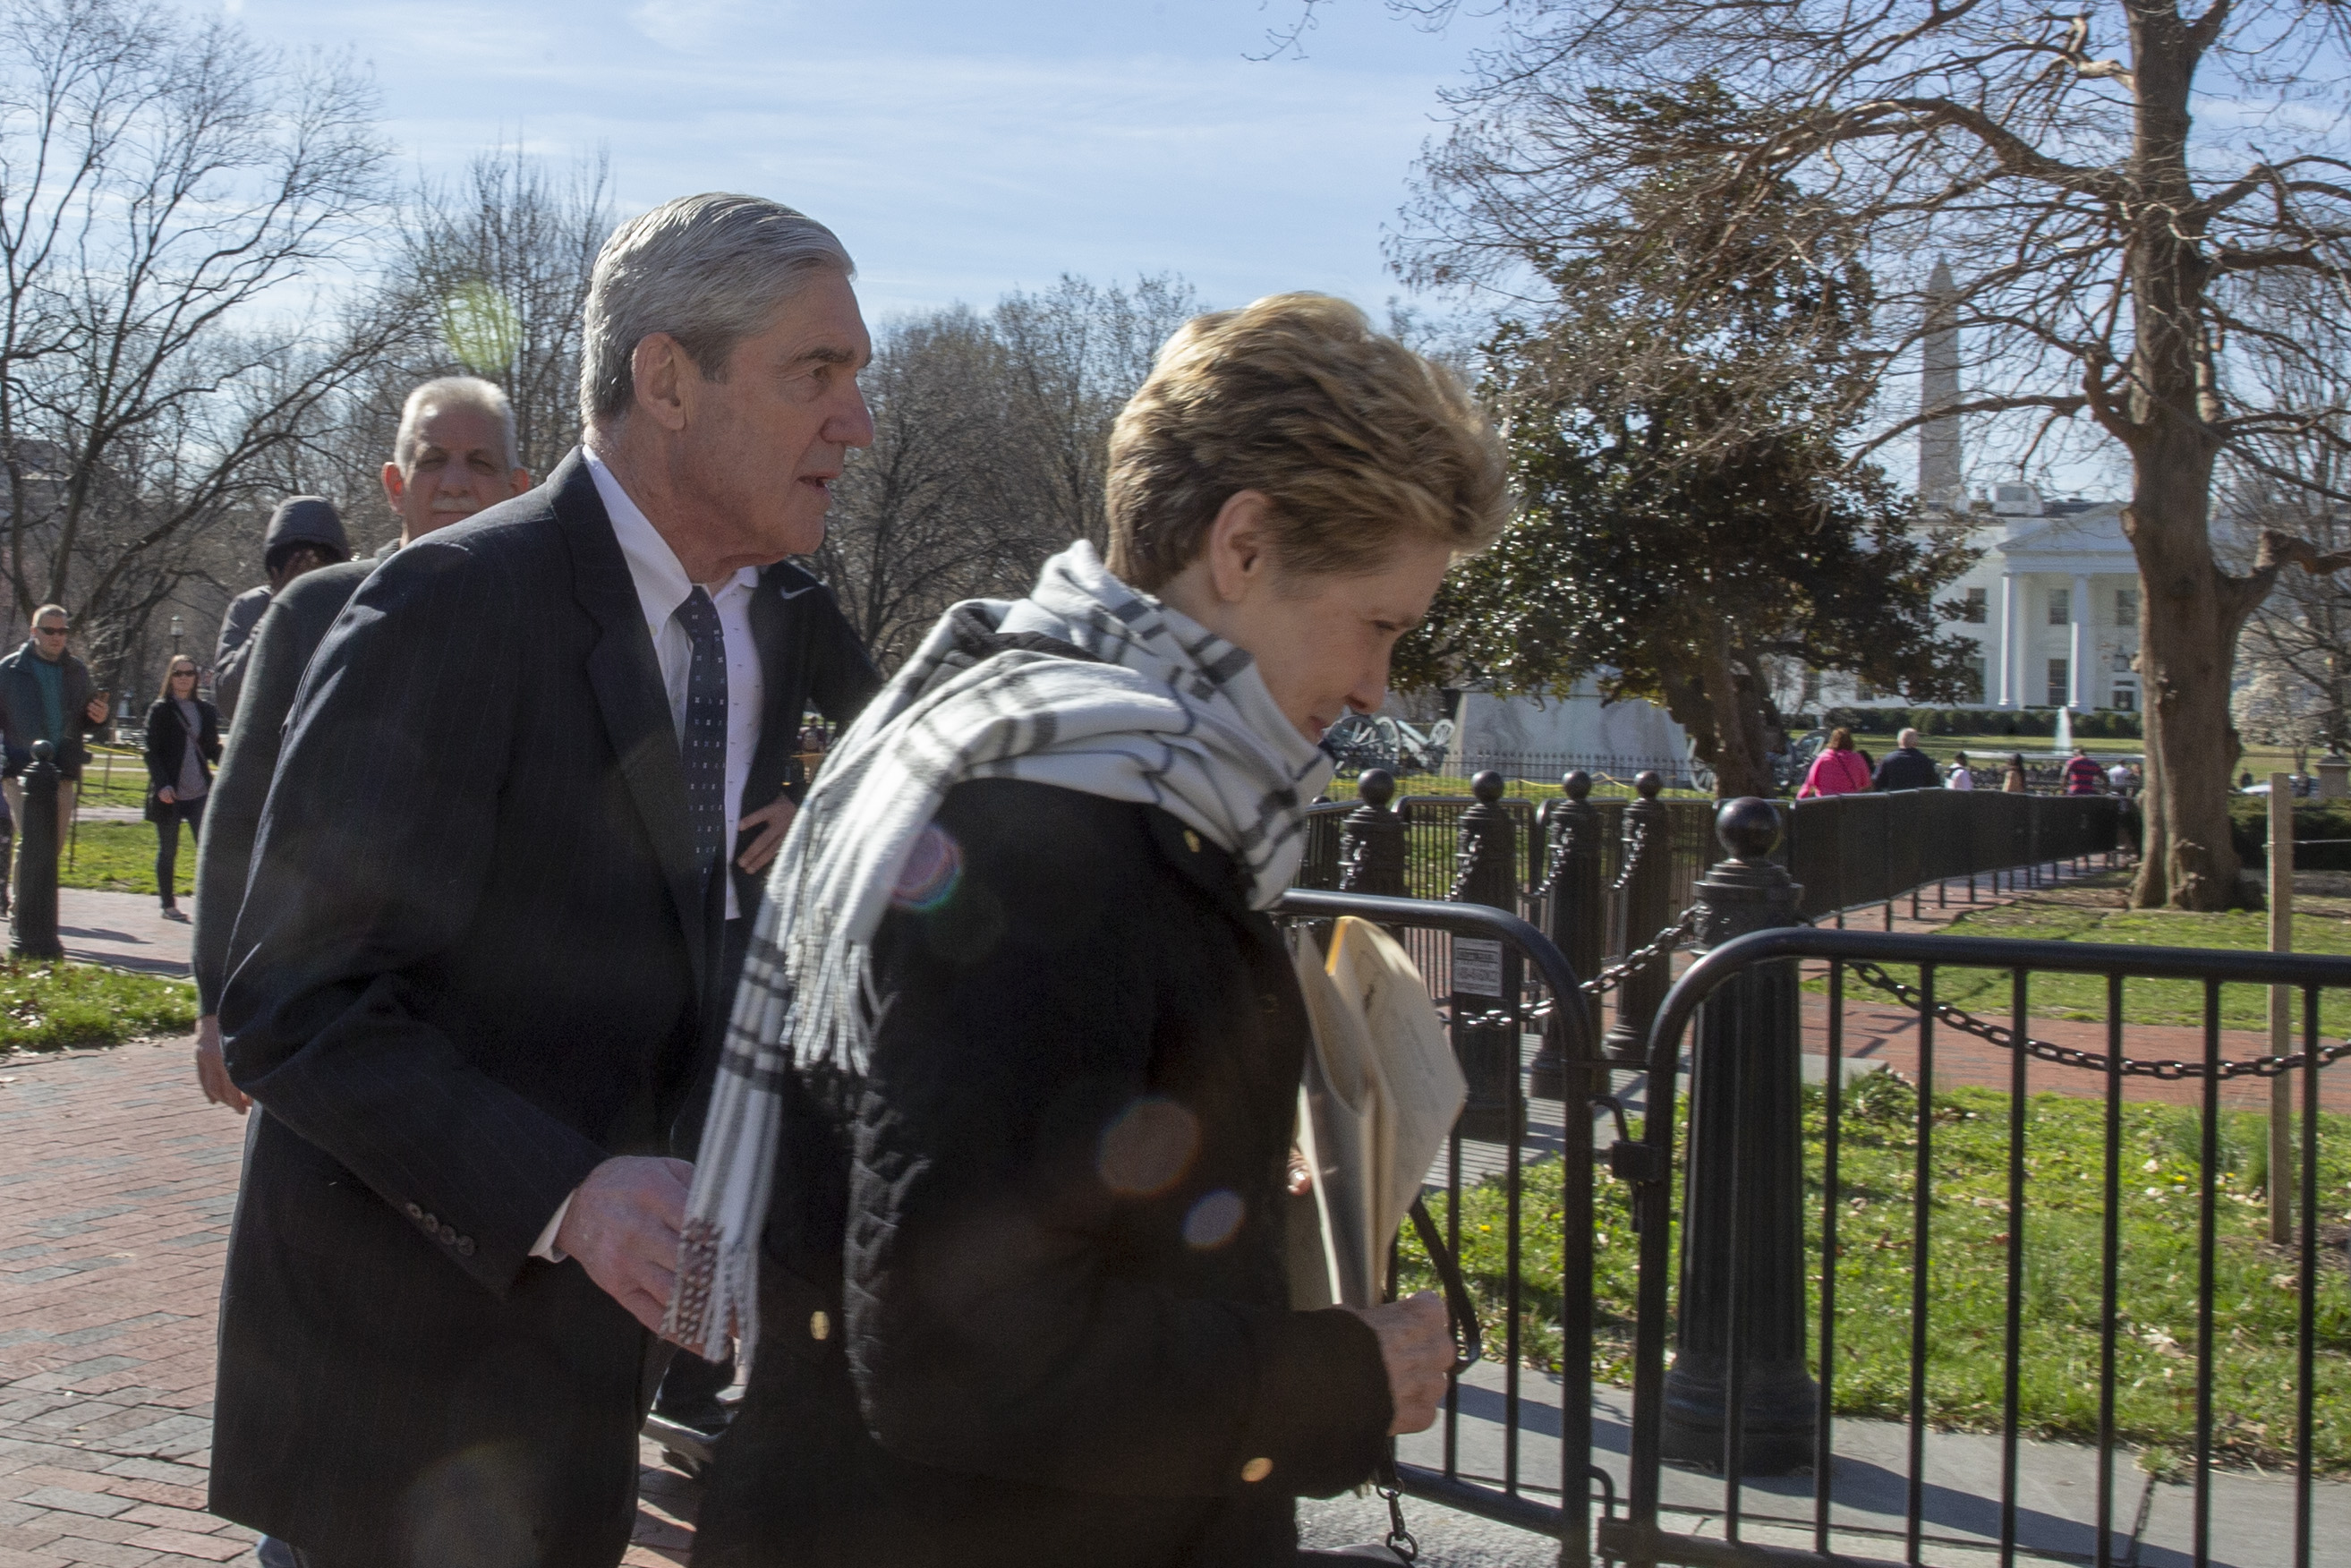 Special Counsel Robert Mueller walks with his wife Ann Mueller on March 24, 2019 in Washington, DC.